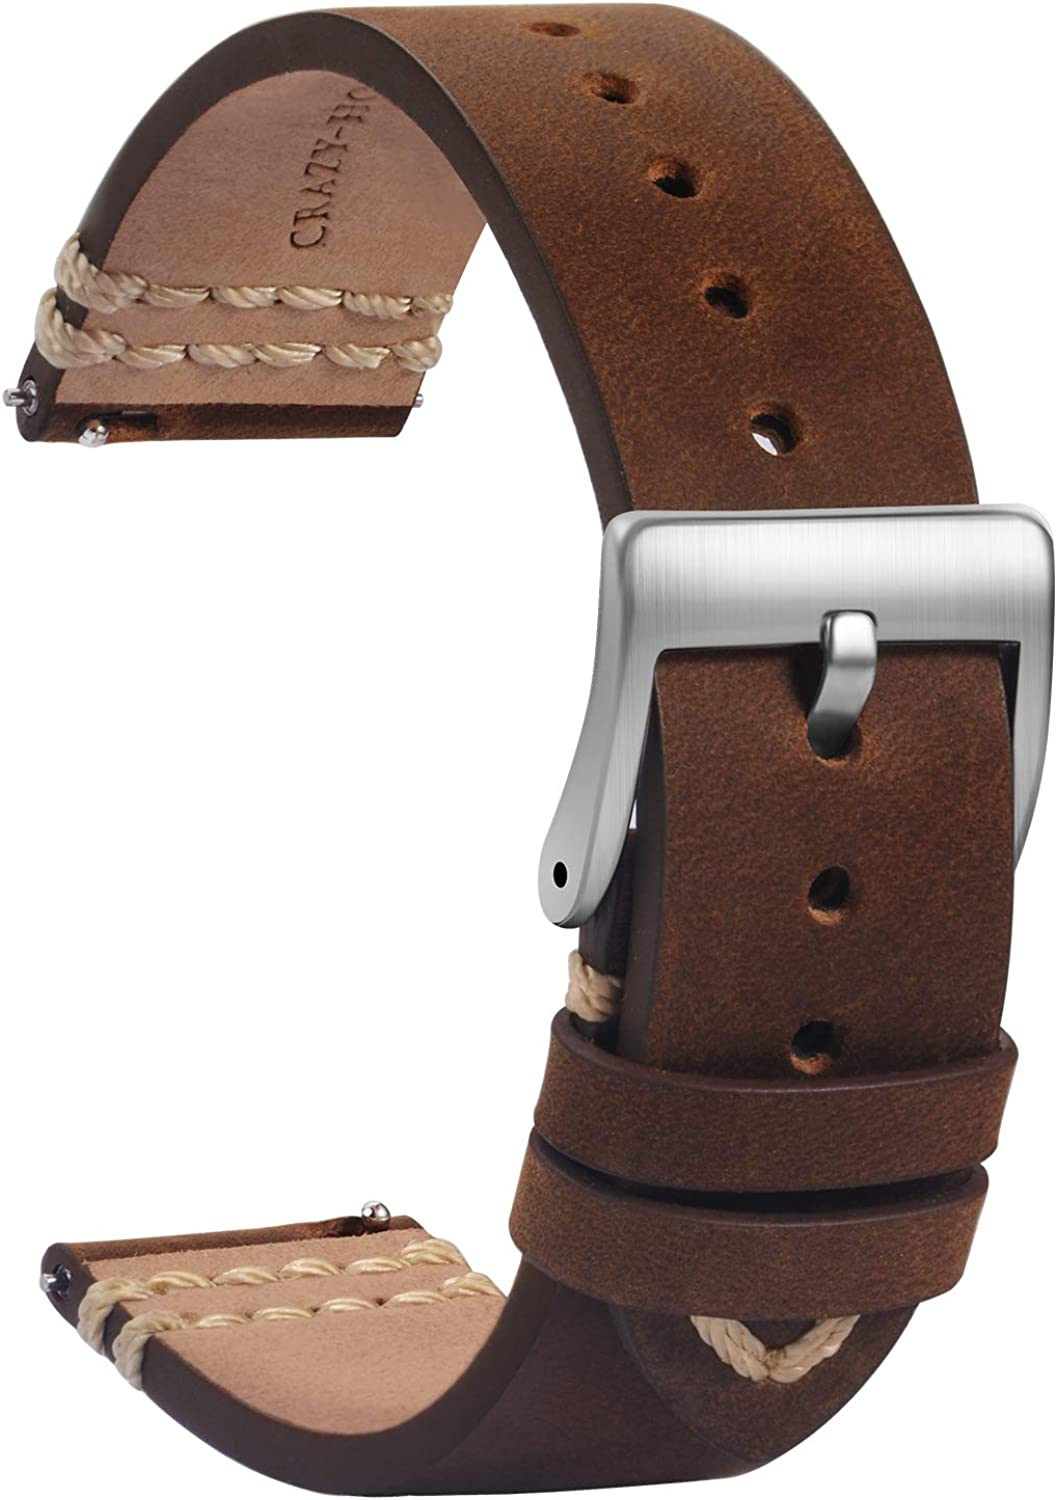 TStrap Leather Watch Bands 20mm Inexpensive Quick - Release Soft specialty shop Brown